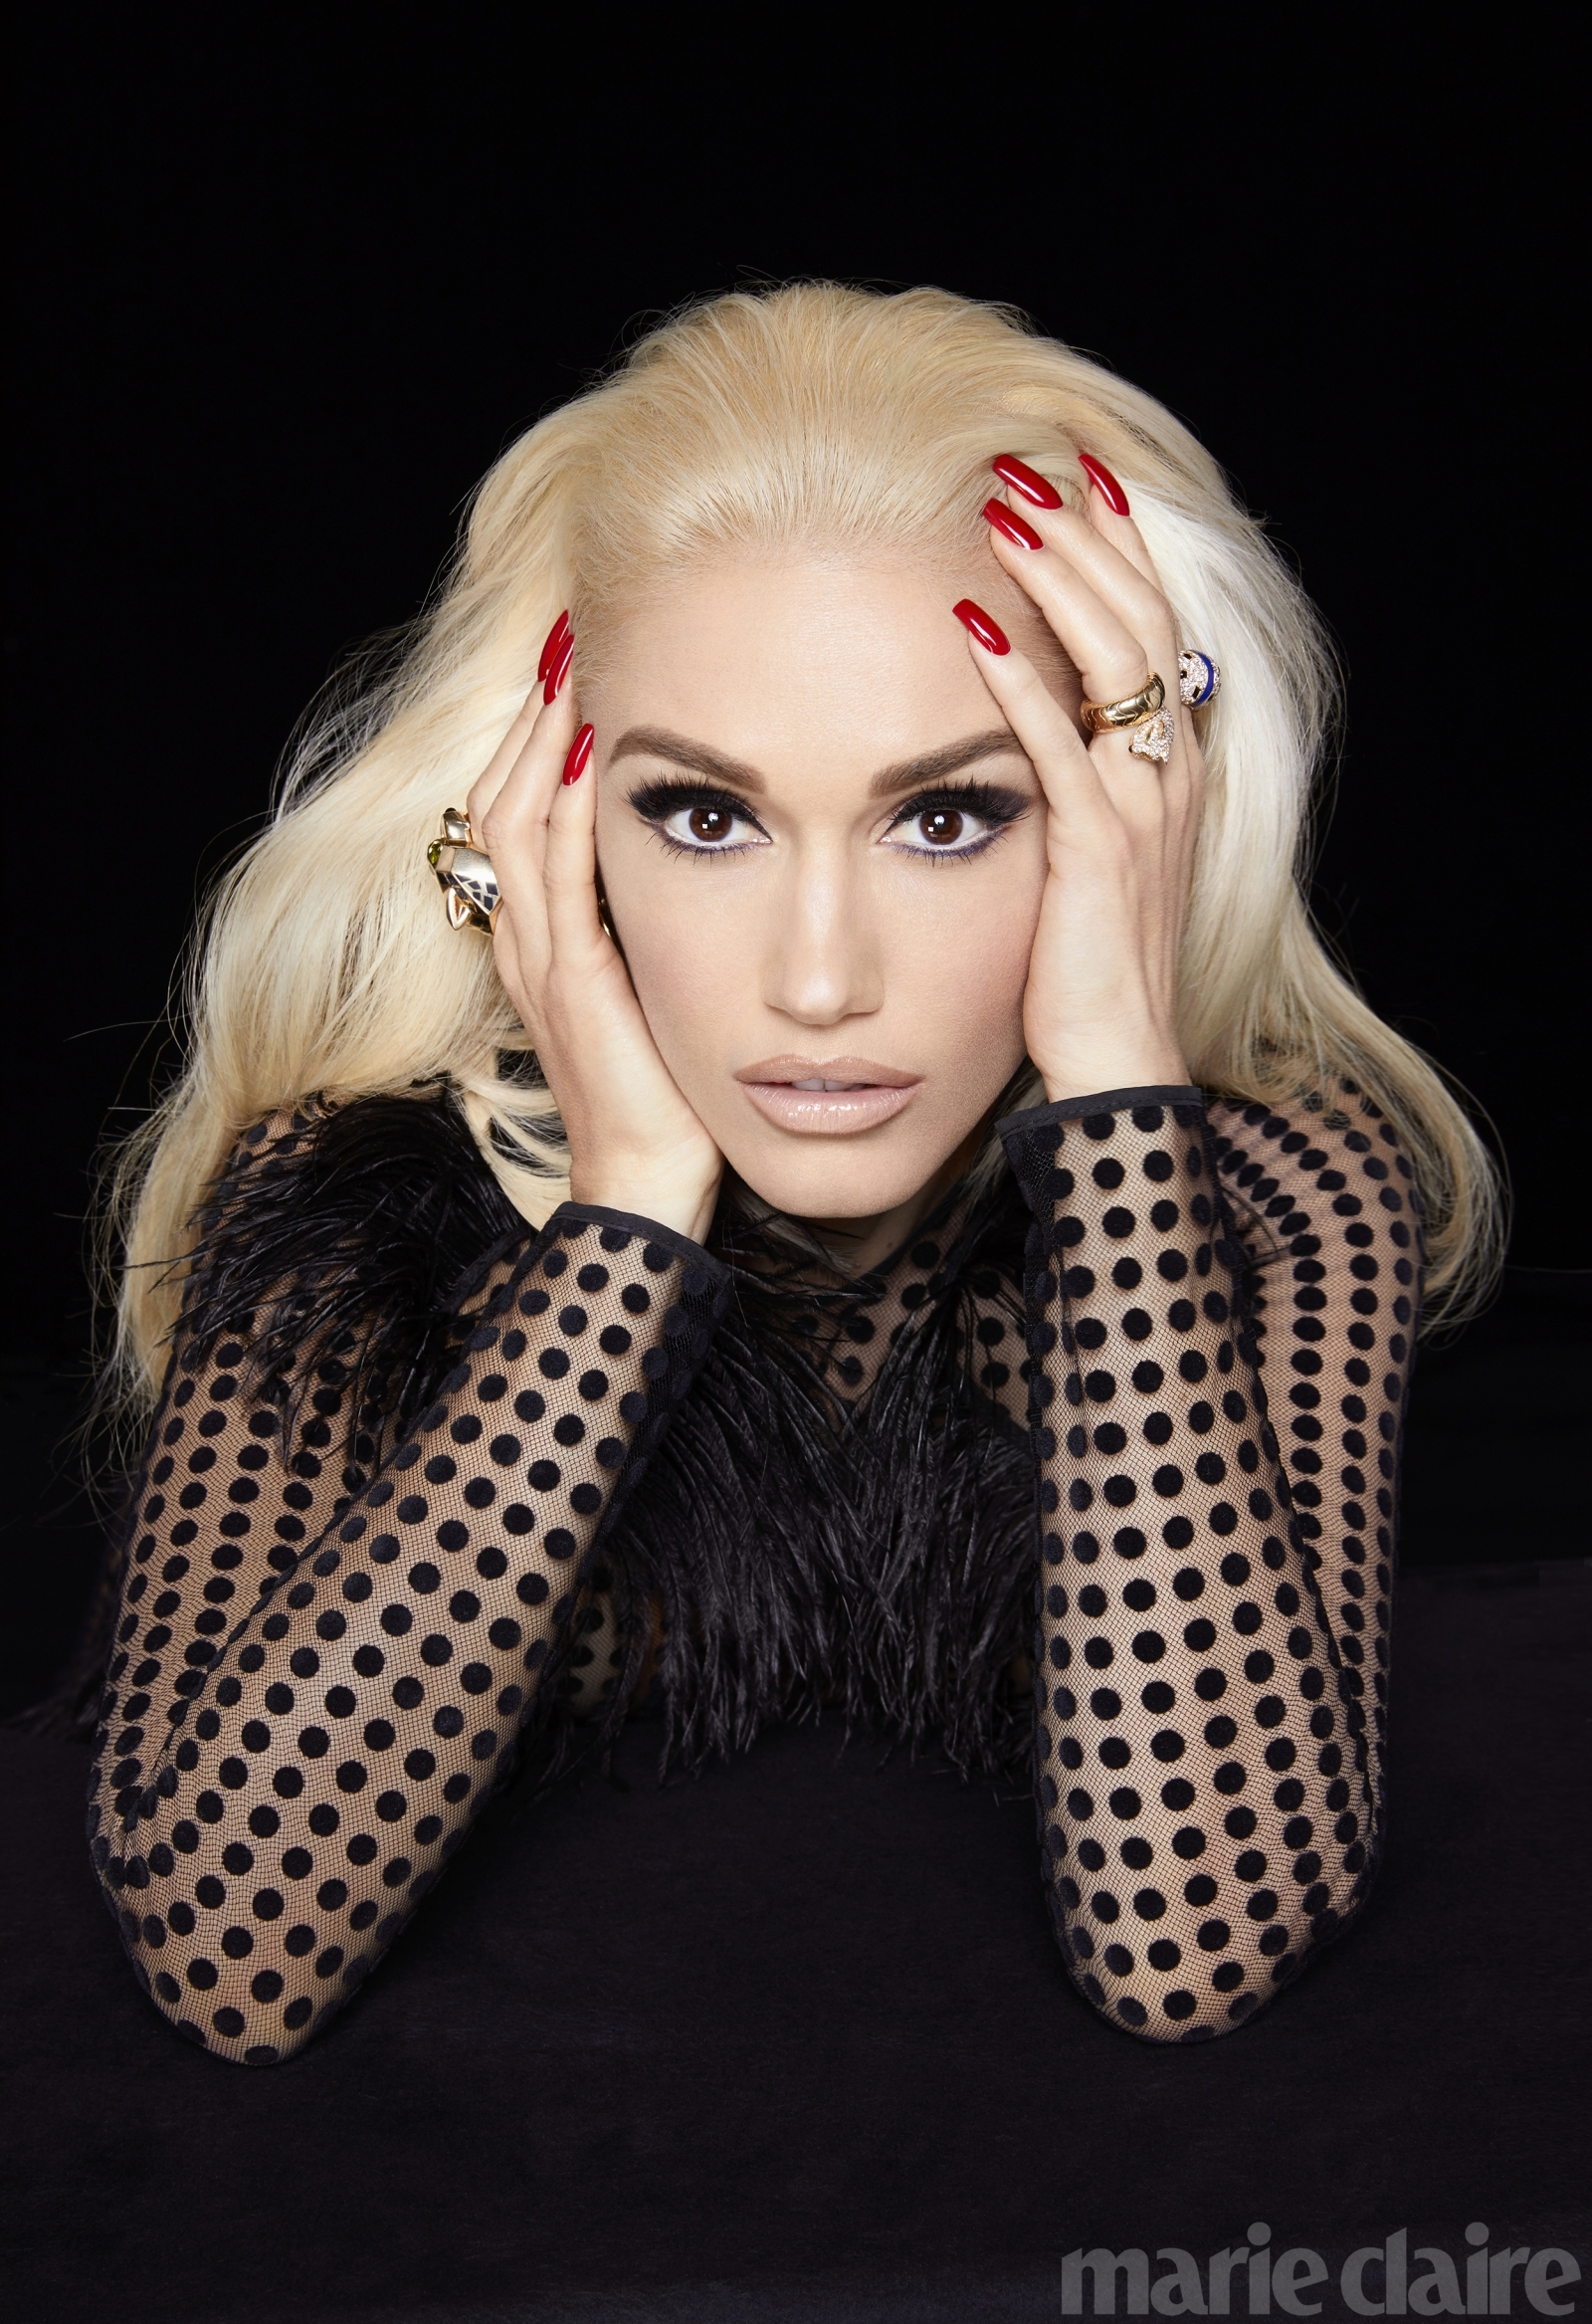 Blake Shelton Gwen Stefani >> Gwen Stefani opens up about Gavin Rossdale heartbreak in stunning Marie Claire shoot